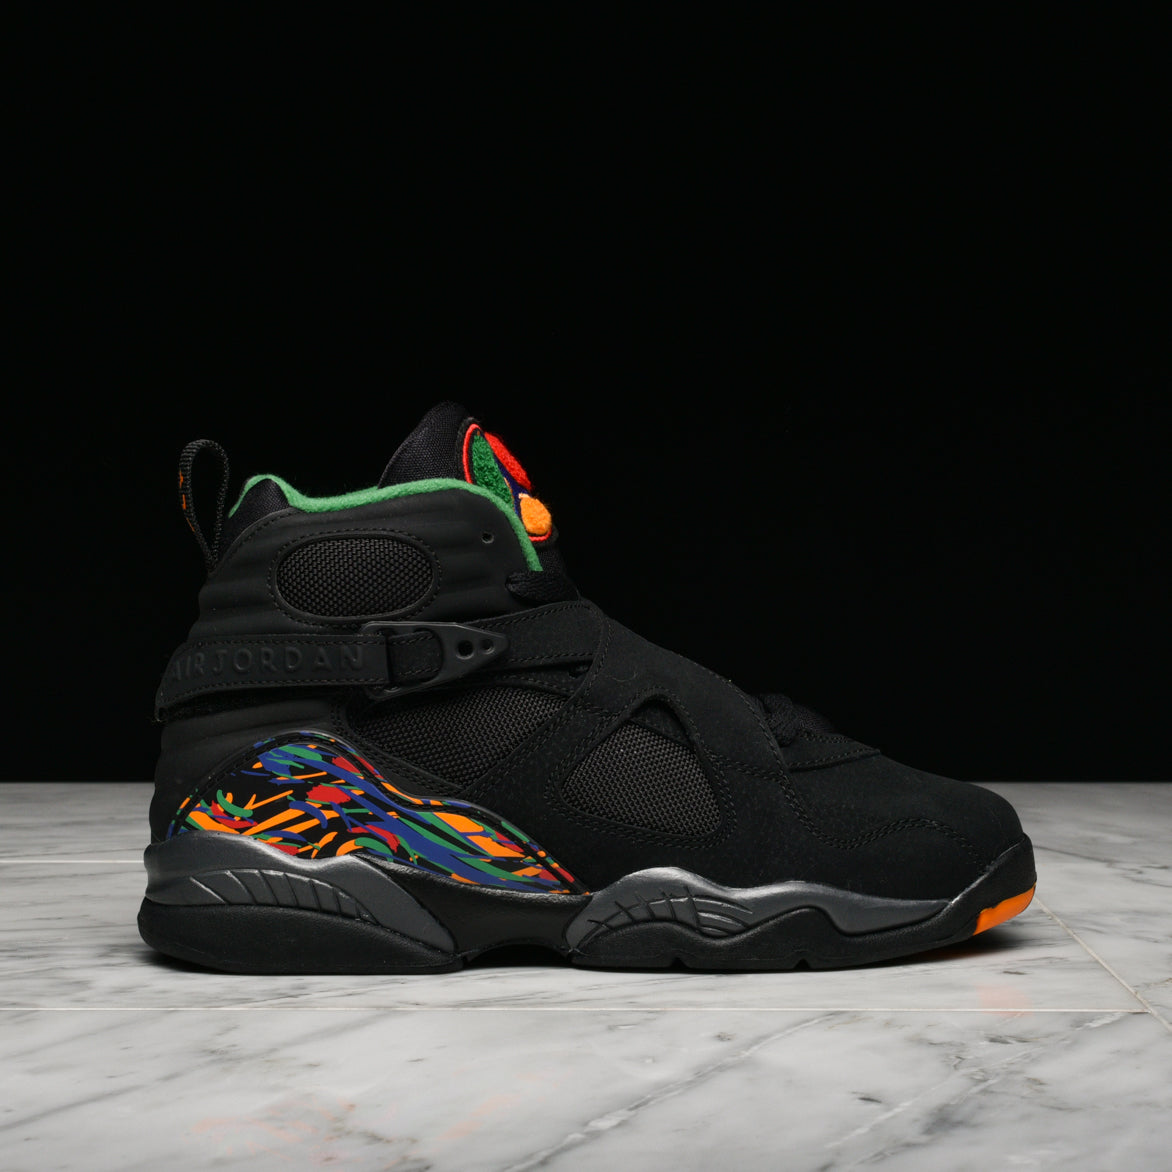 quality design 1117c 0c4ef sale air jordan 8 black 160b5 2c4f6